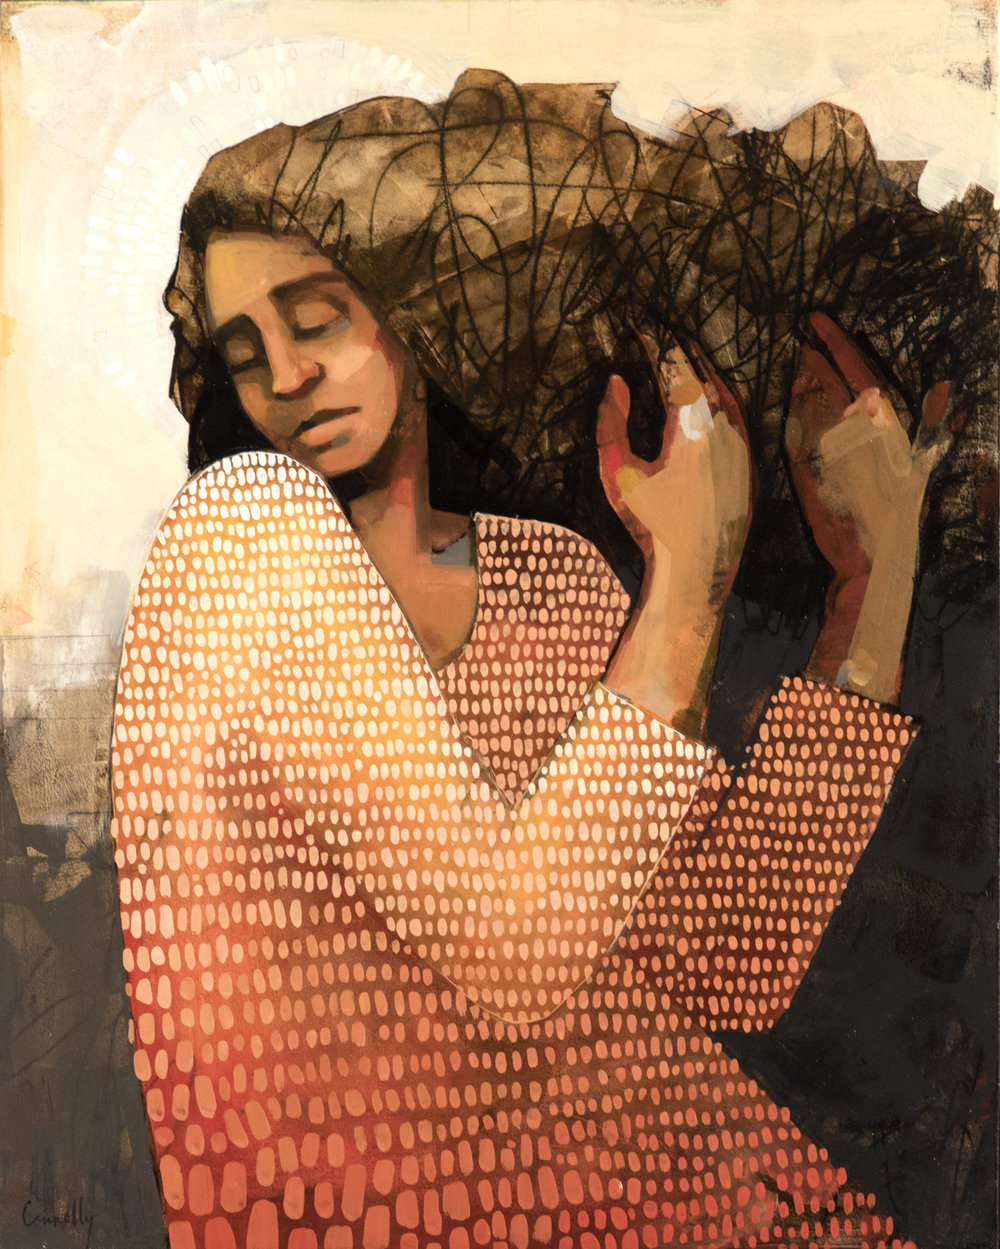 Detangling My Mind by Caitlin Connolly, 30 x 24 in., Oil on Panel.